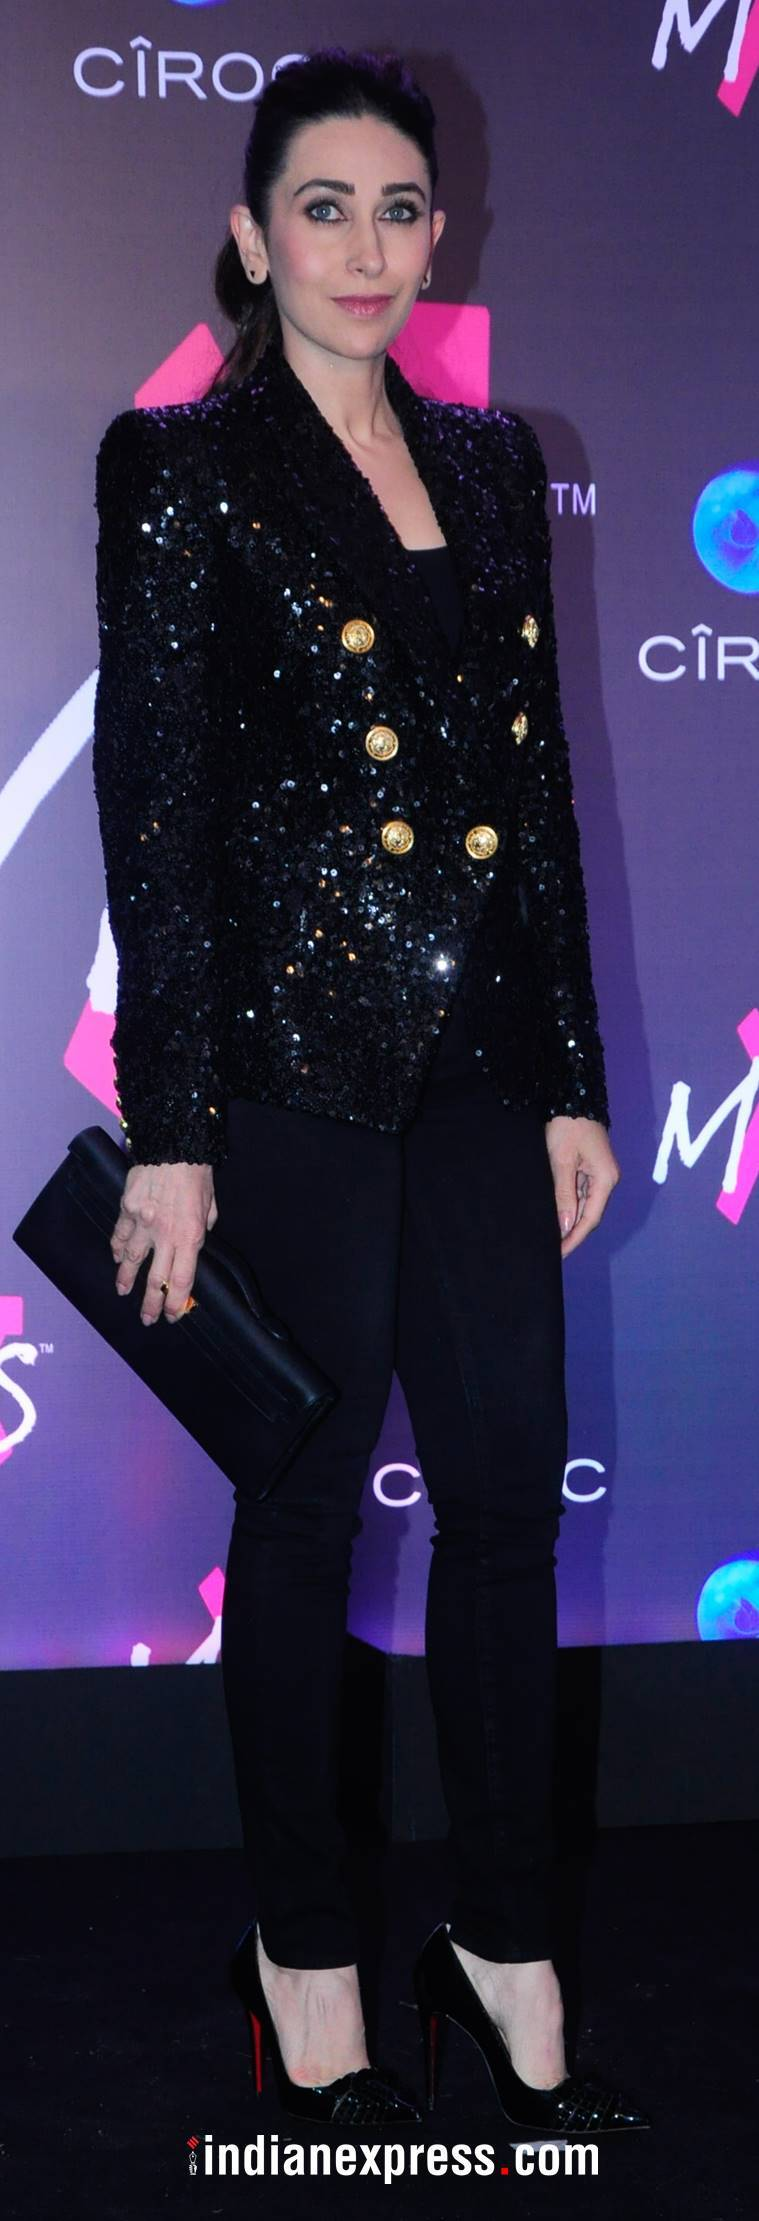 MxS launch, Shweta Bachchan fashion line, Monisha Jaising fashion line launch, Aishwarya Rai Bachchan latest photos, Suhana Khan latest photos, Katrina Kaif latest photos, indian express, indian express news